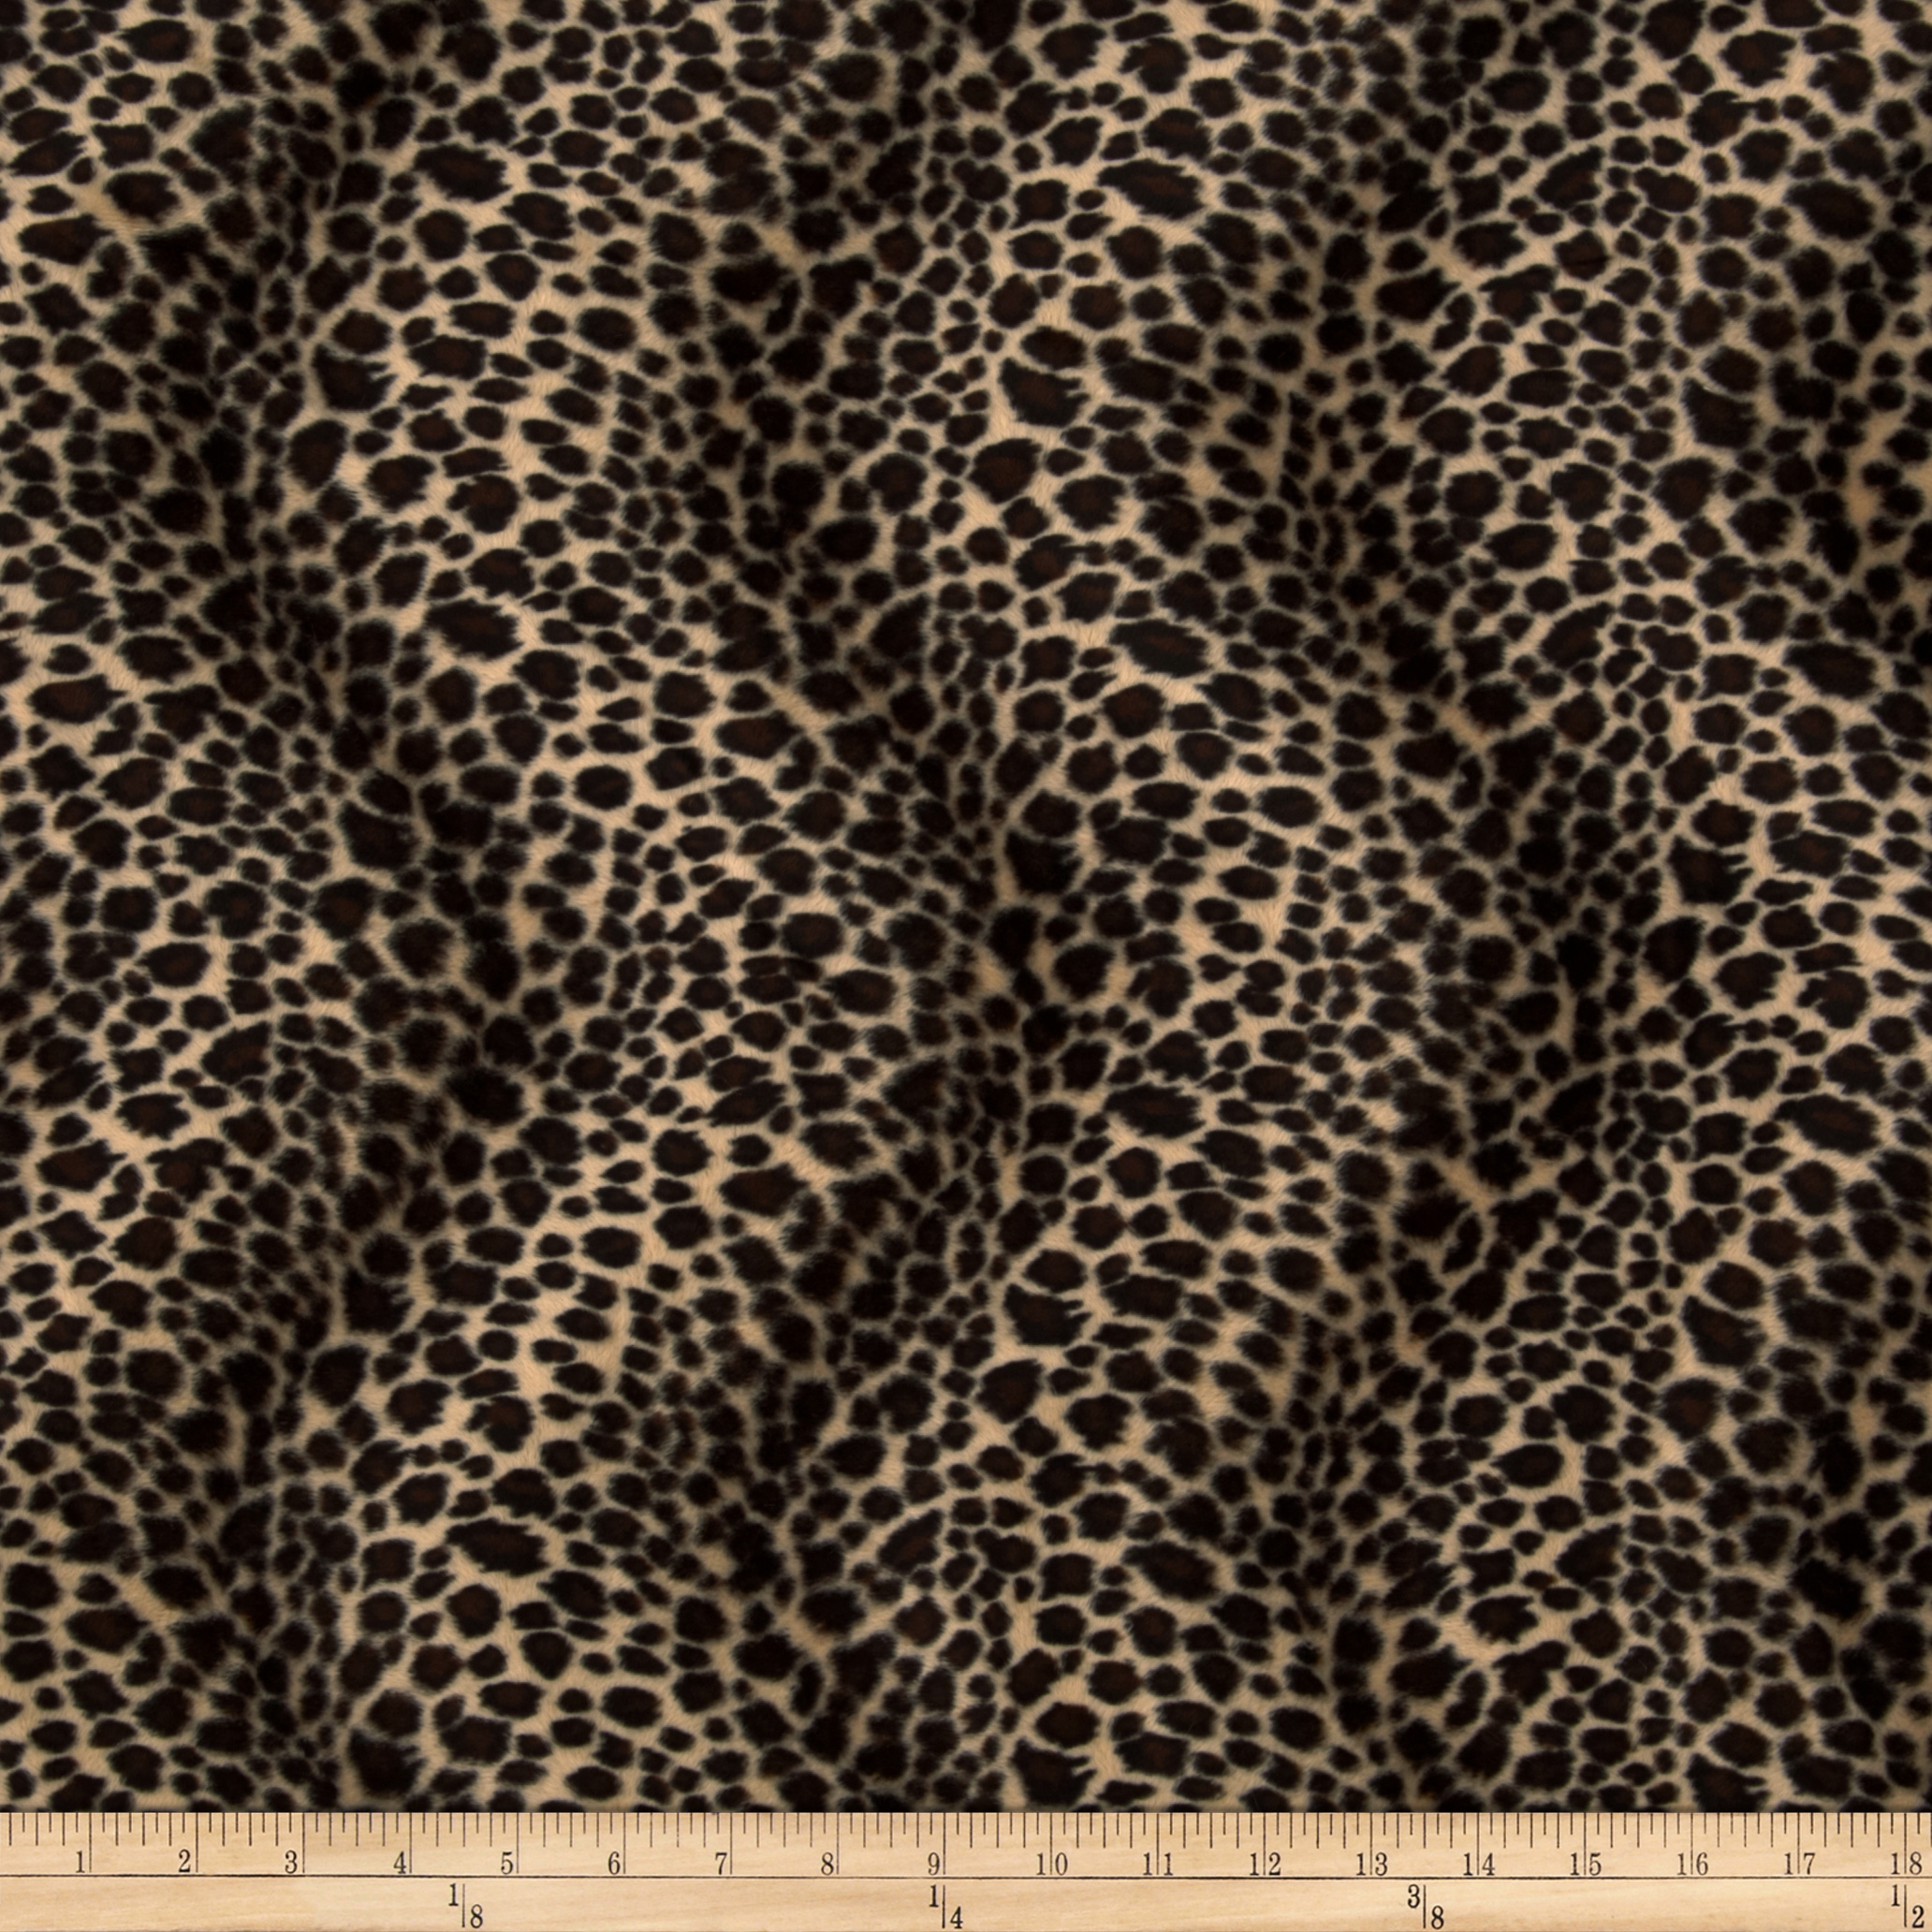 Velboa Faux Fur Cheetah Brown Fabric